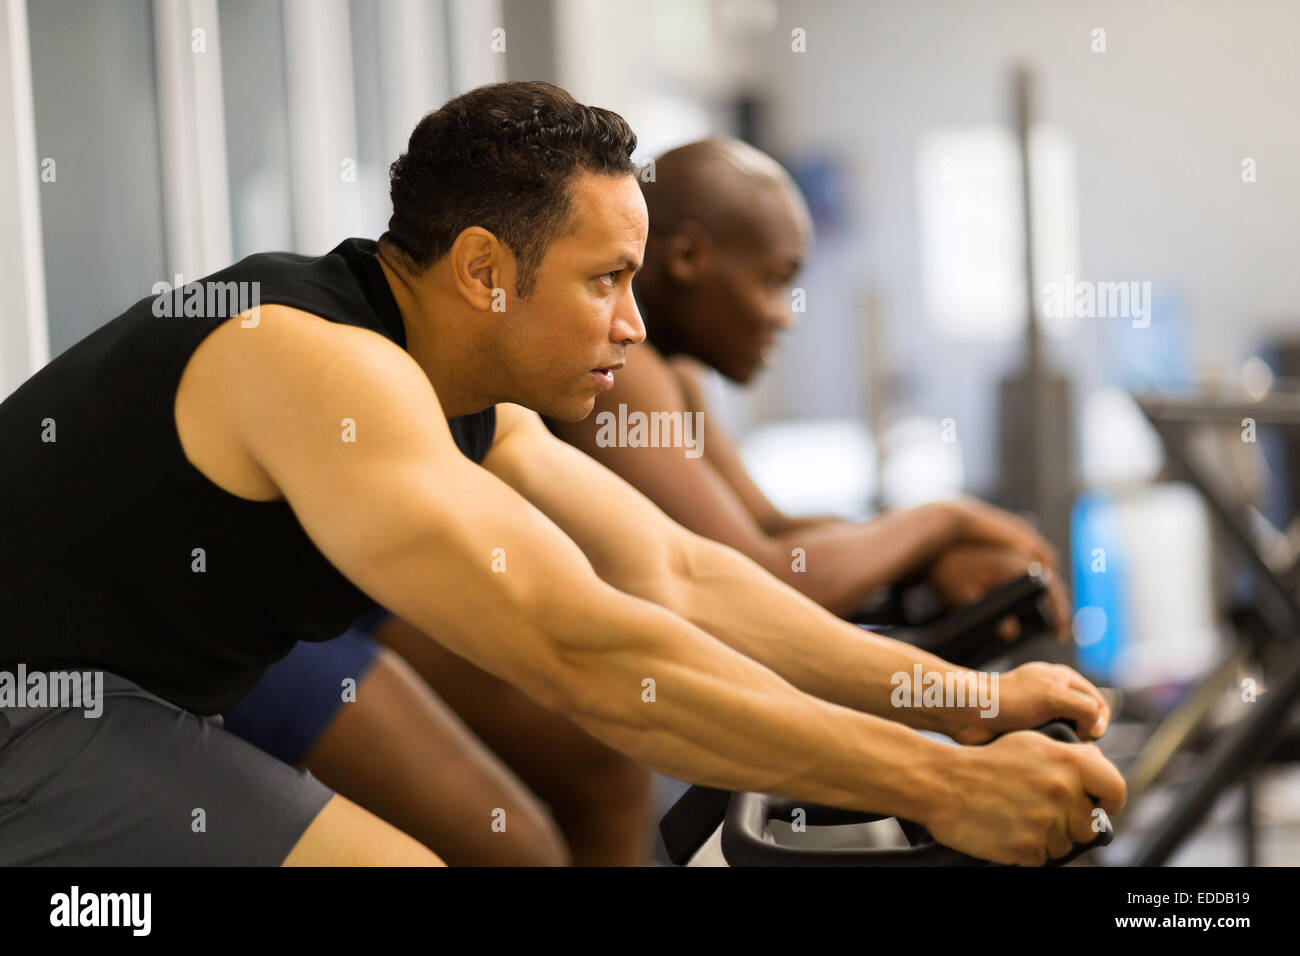 fitness men working out with stationary bike in gym - Stock Image